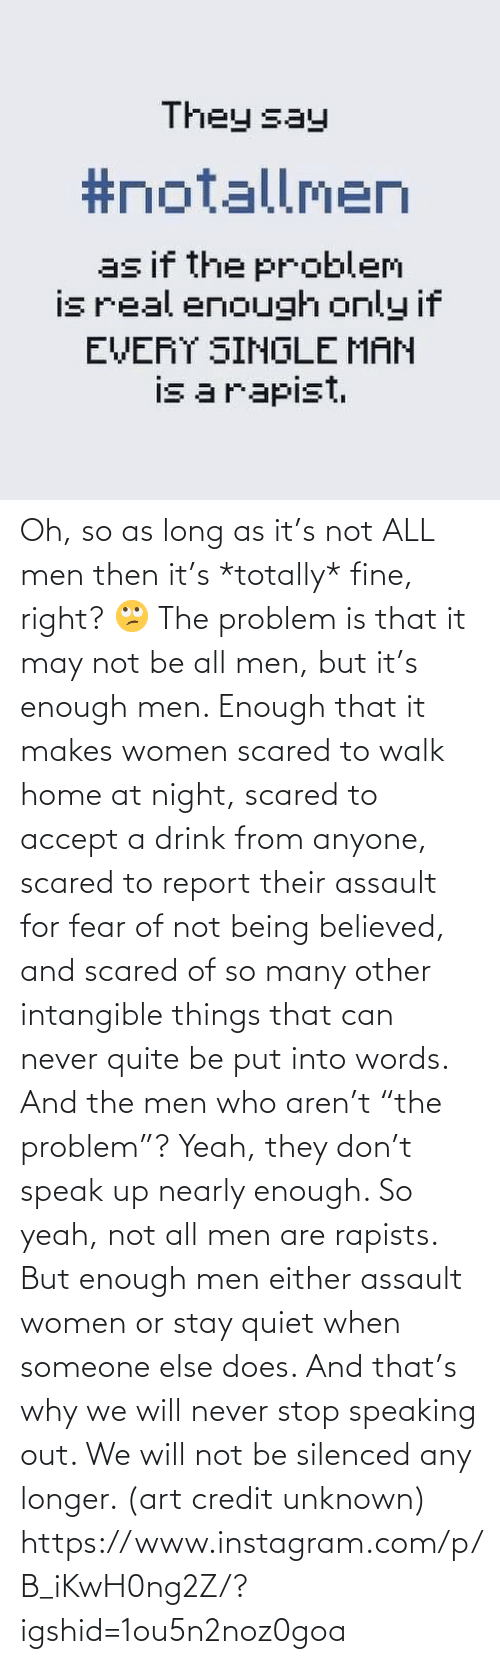 """Aren: Oh, so as long as it's not ALL men then it's *totally* fine, right? 🙄 The problem is that it may not be all men, but it's enough men. Enough that it makes women scared to walk home at night, scared to accept a drink from anyone, scared to report their assault for fear of not being believed, and scared of so many other intangible things that can never quite be put into words. And the men who aren't """"the problem""""? Yeah, they don't speak up nearly enough. So yeah, not all men are rapists. But enough men either assault women or stay quiet when someone else does. And that's why we will never stop speaking out. We will not be silenced any longer. (art credit unknown)  https://www.instagram.com/p/B_iKwH0ng2Z/?igshid=1ou5n2noz0goa"""